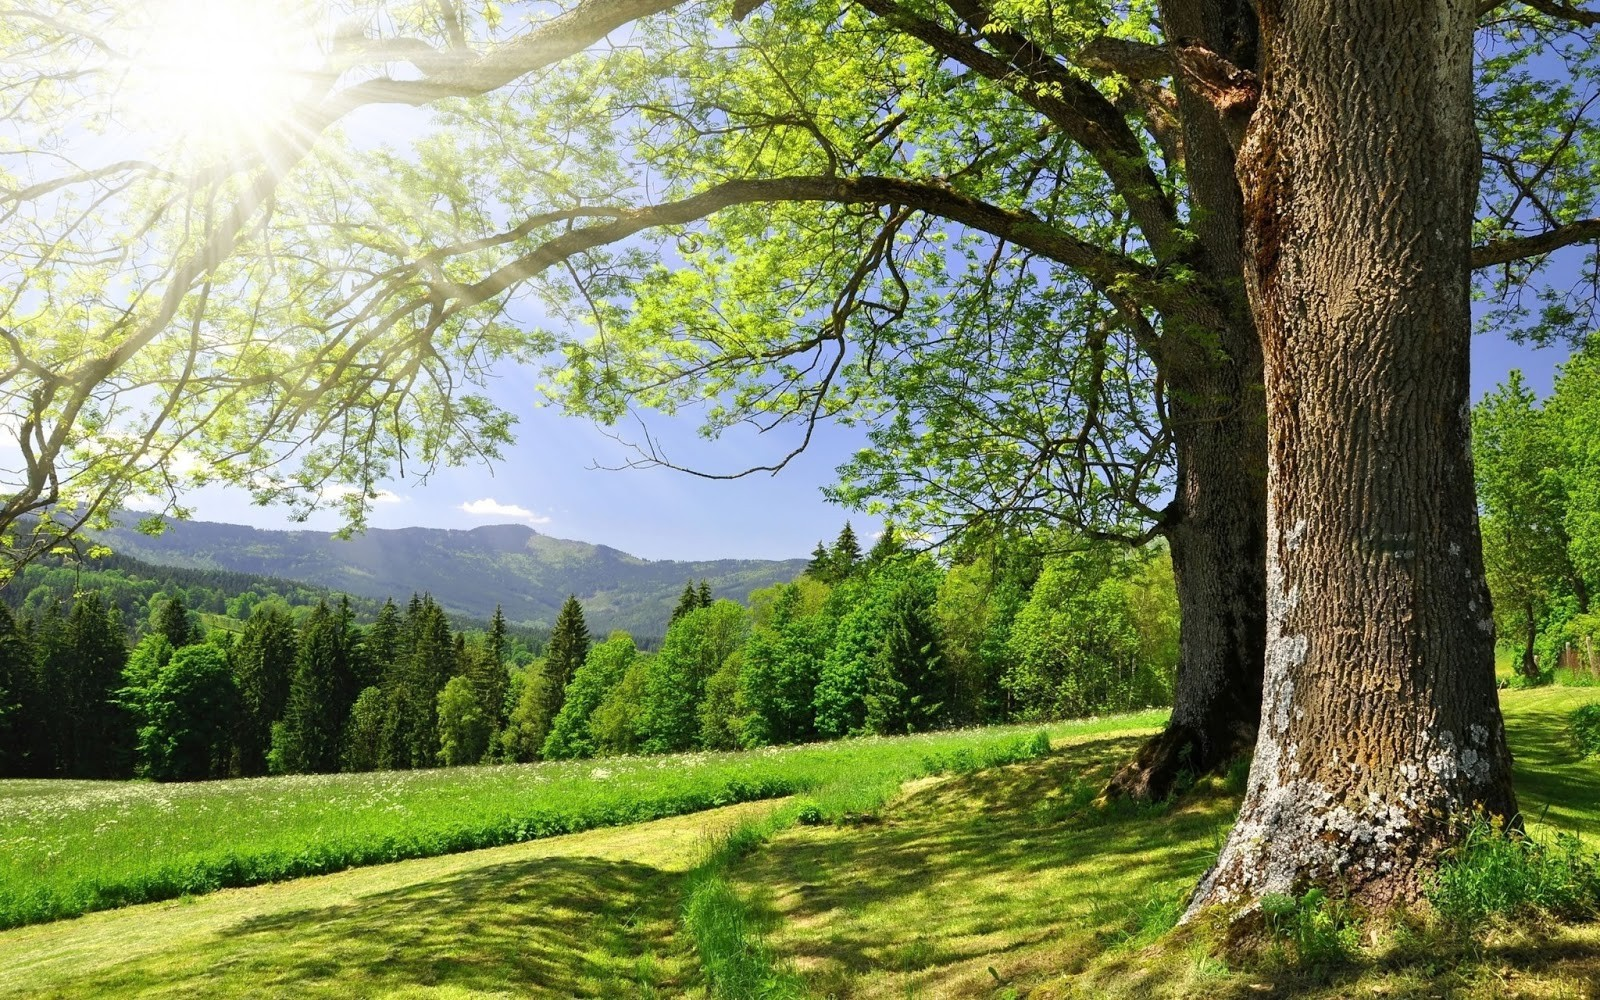 forest-trees-grass-green-summer-sun-glare-nature.jpg